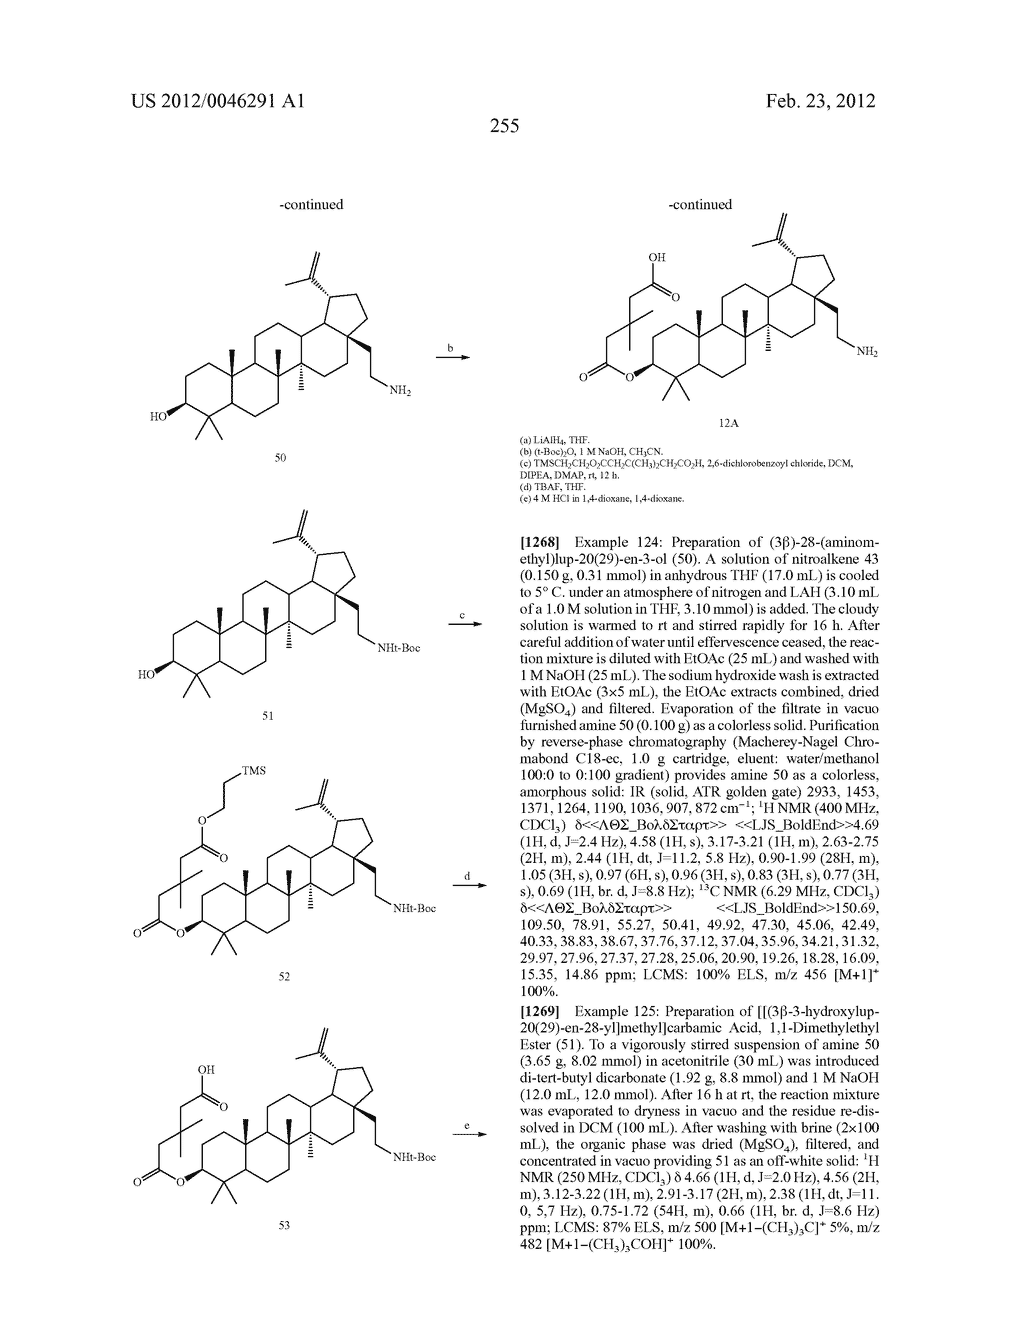 Extended Triterpene Derivatives - diagram, schematic, and image 255